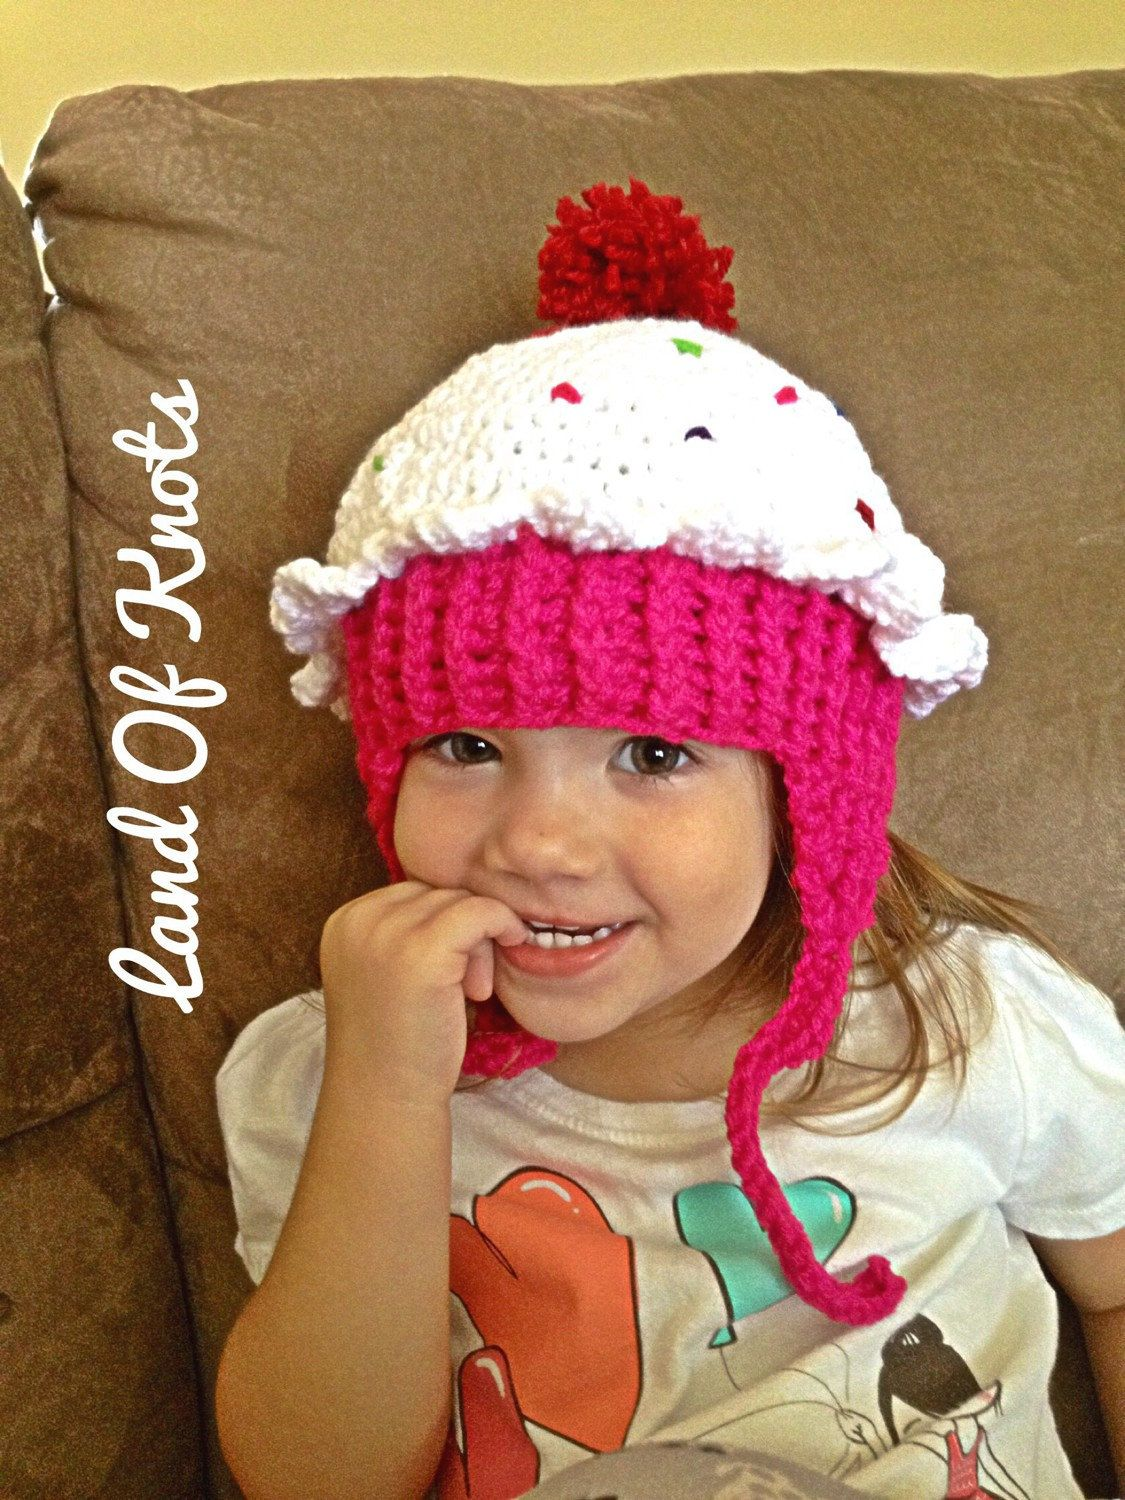 Crochet cupcake hat cupcake hat cupcake beanie first birthday crochet 1st birthday cupcake hat birthday hat special occassion hat pink and white bankloansurffo Images